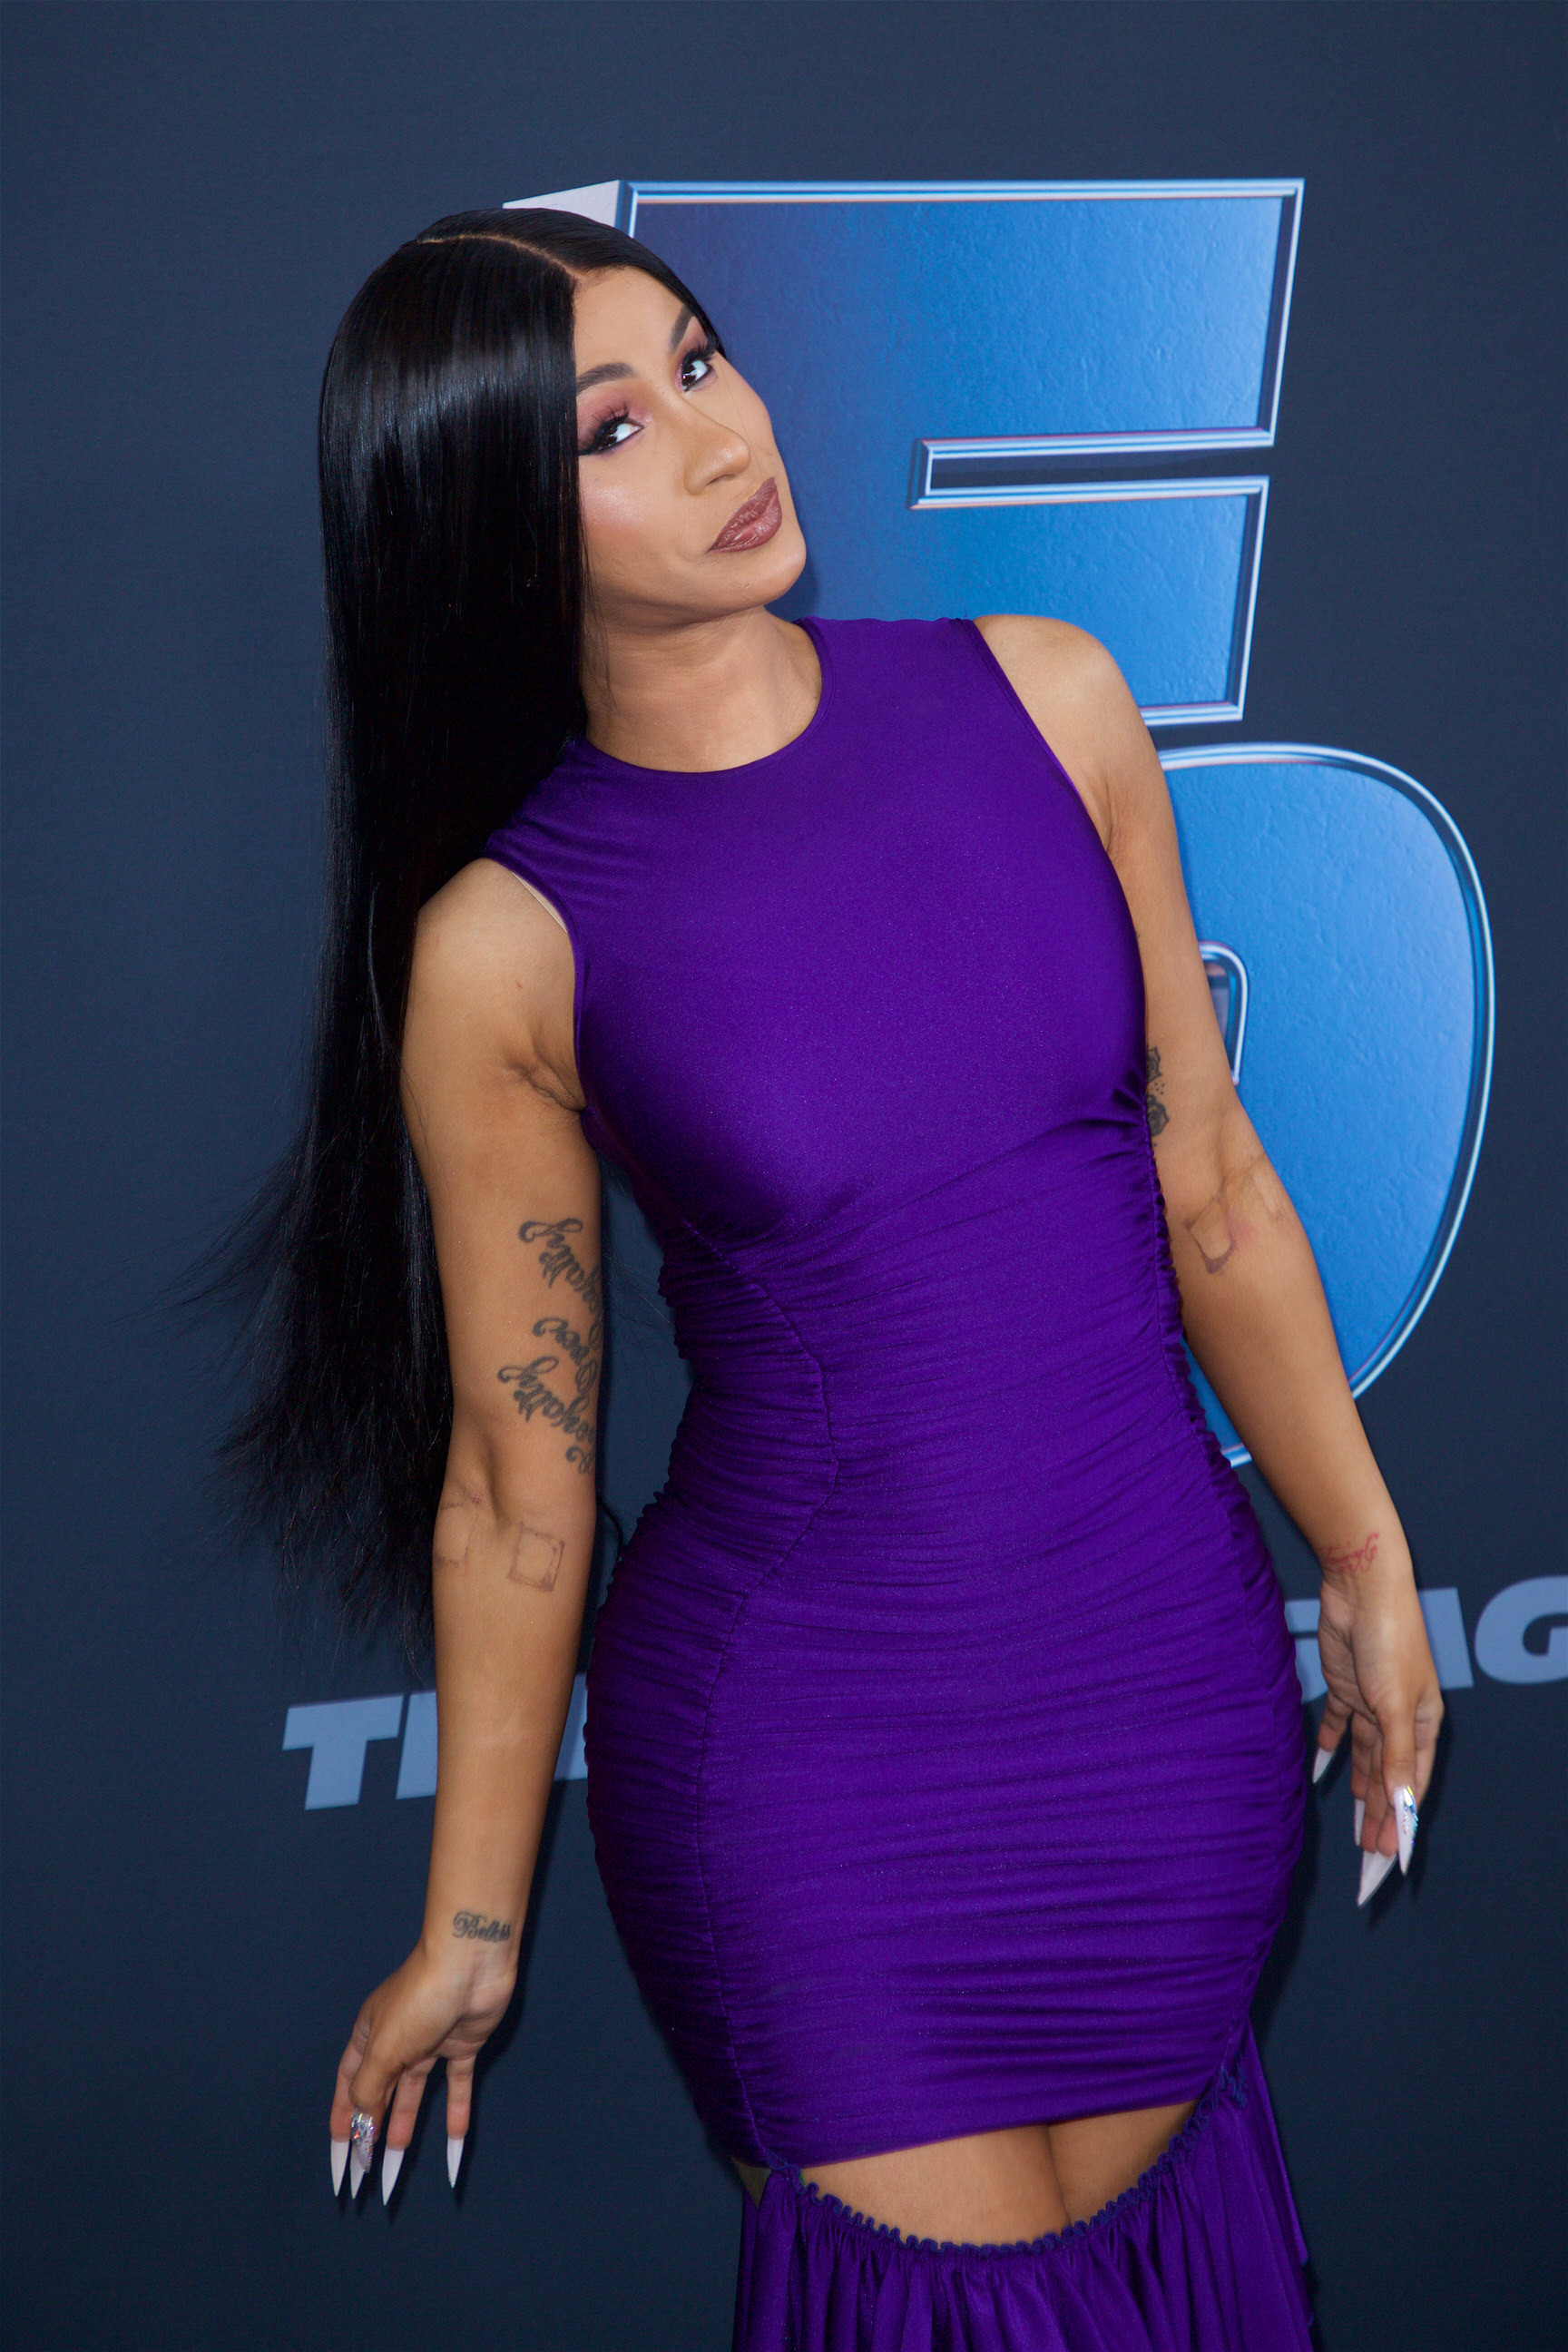 Cardi B arrives at 'The Road to F9' Global Fan Extravaganza, launching all new trailer for ninth chapter in the Fast & Furious franchise in Miami, Florida on January 31, 2020 \n© Rolando Rodriguez/jpistudios.com